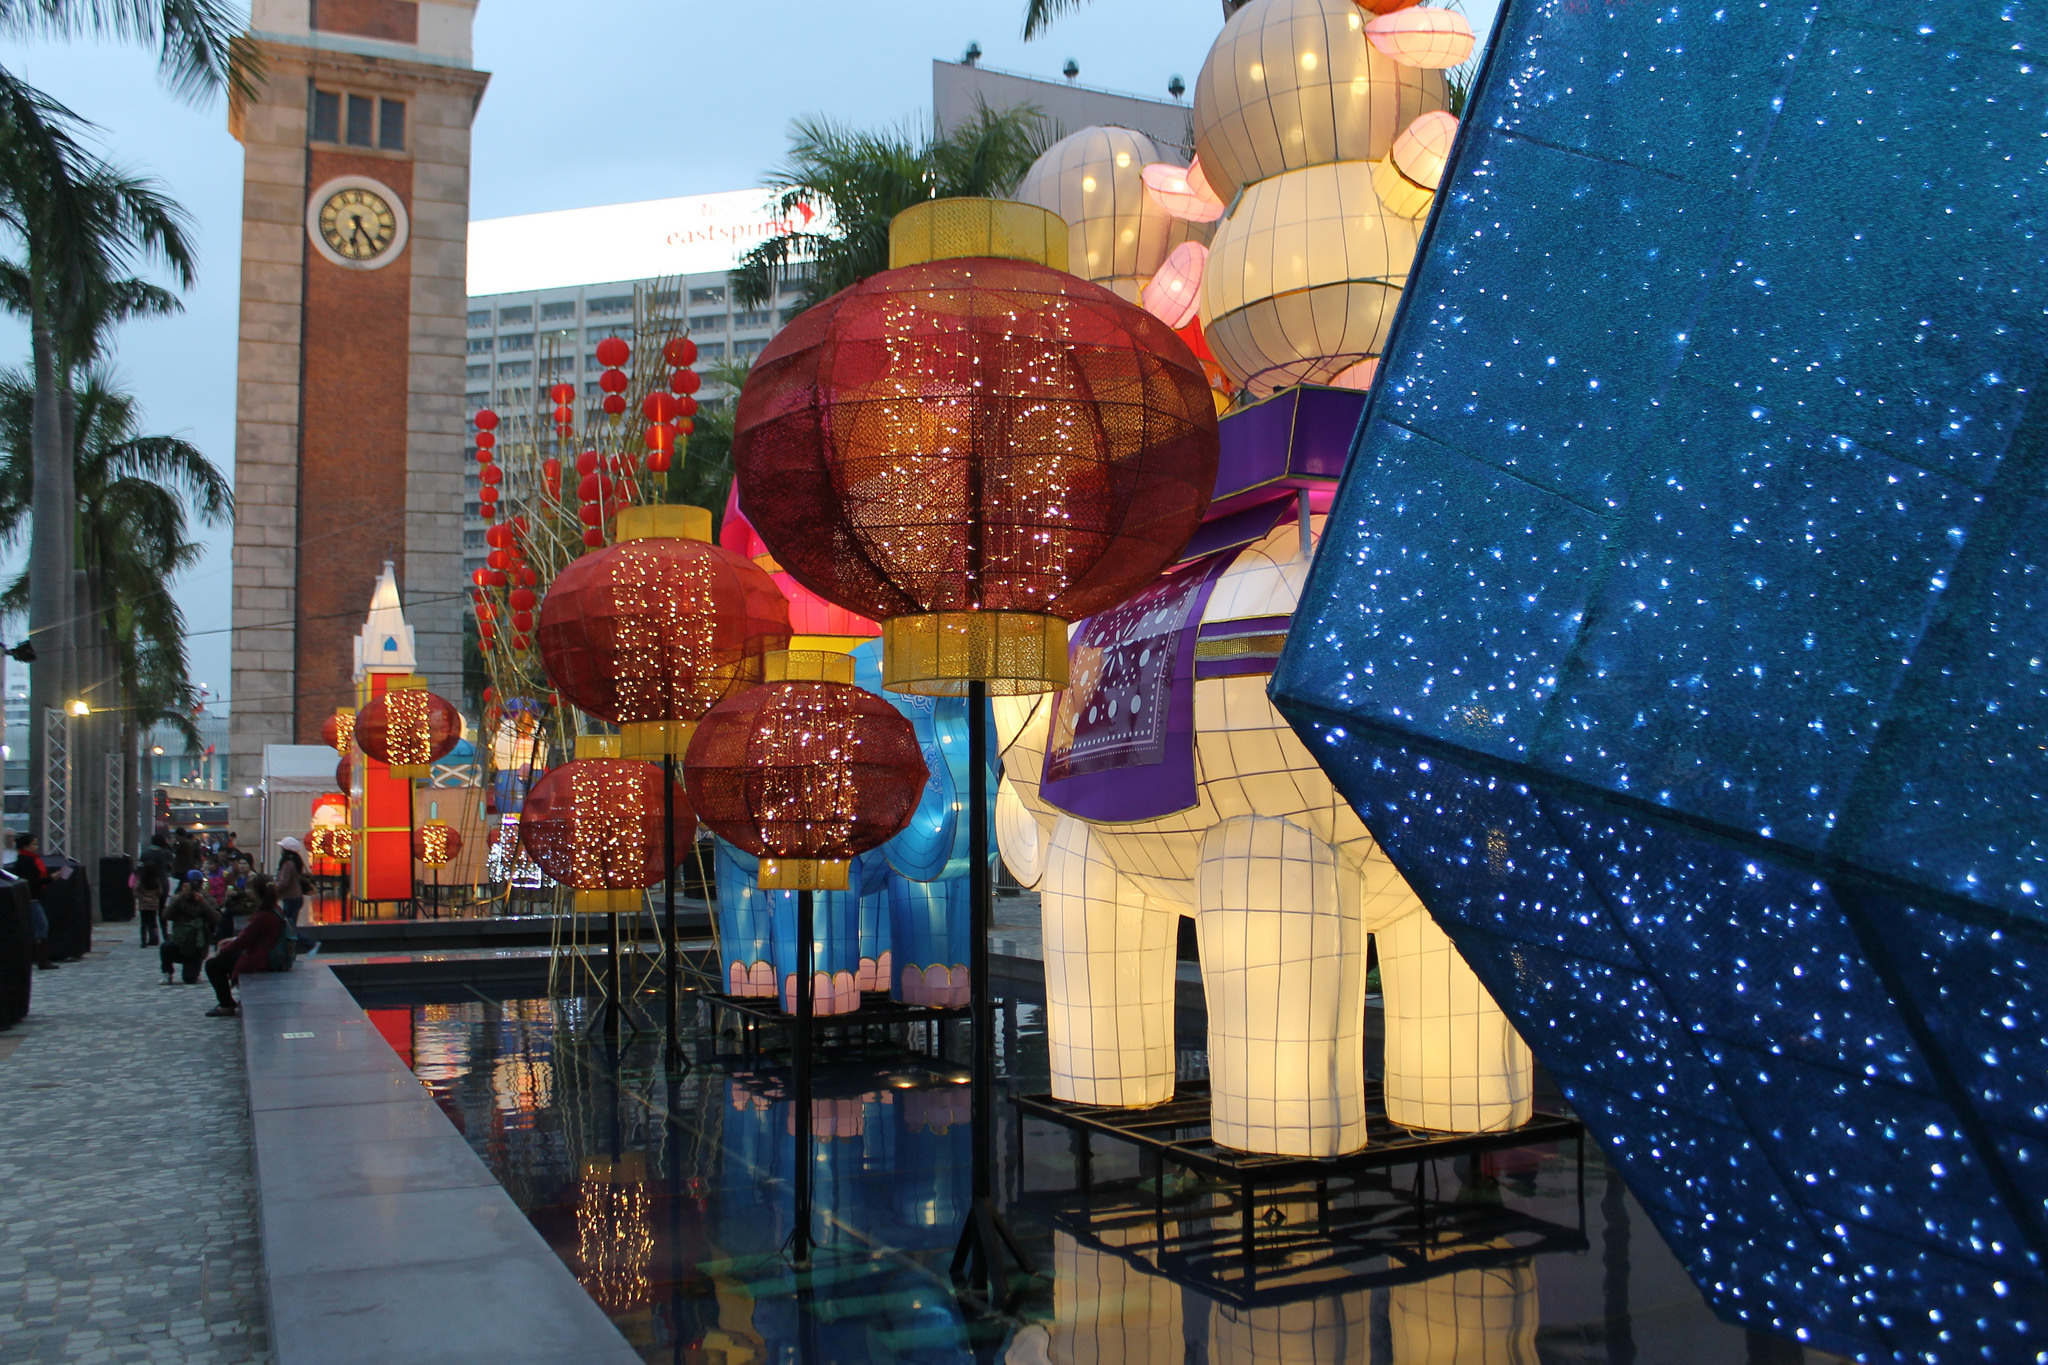 Chinese New Year lantern display at the Cultural Centre Piazza | © Ian Glen/Flickr